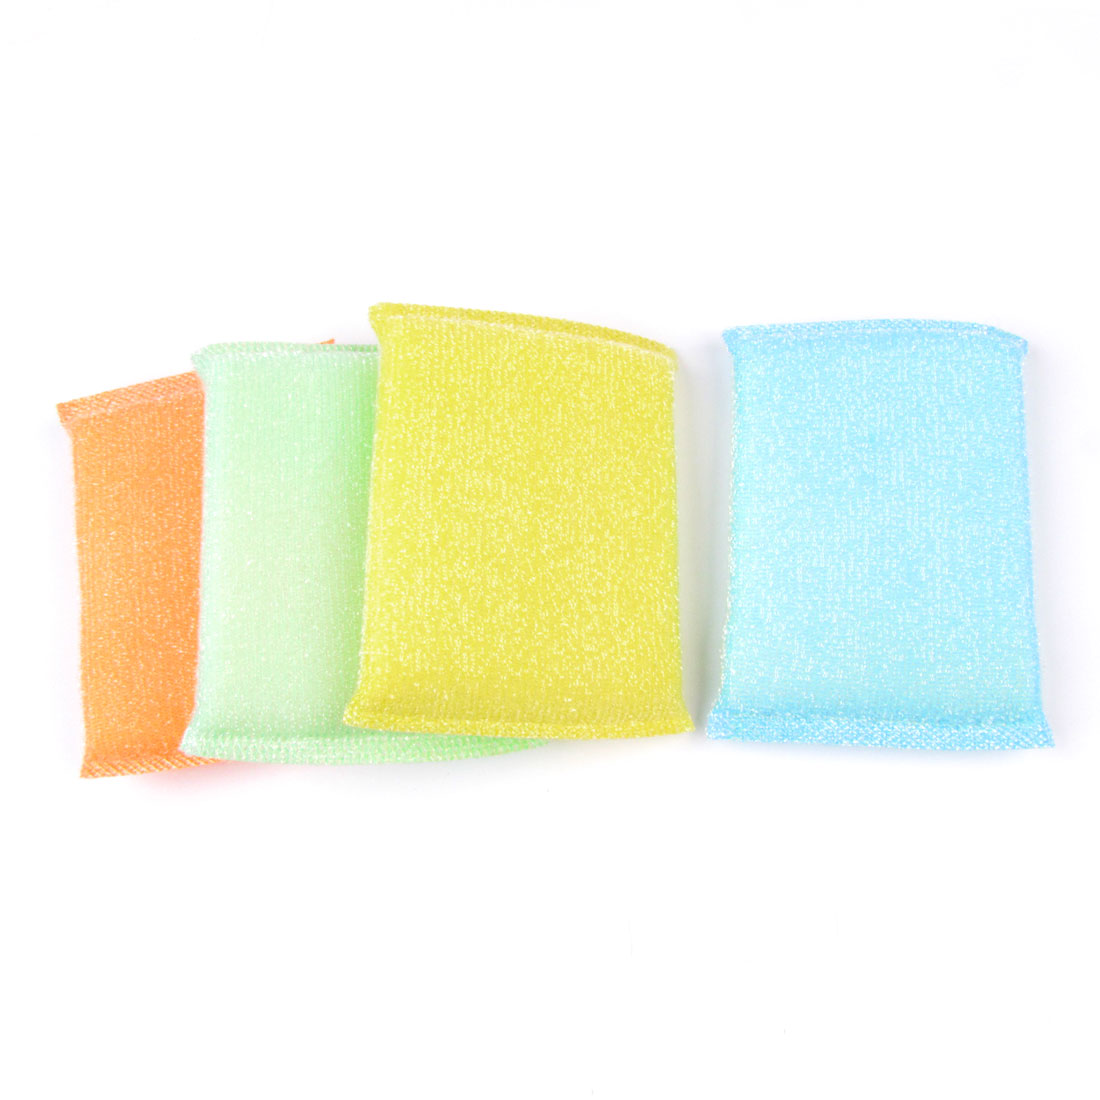 Assorted Color Dish Cleaning Metallic Scrub Sponge Pad Cleaner 4 Pcs